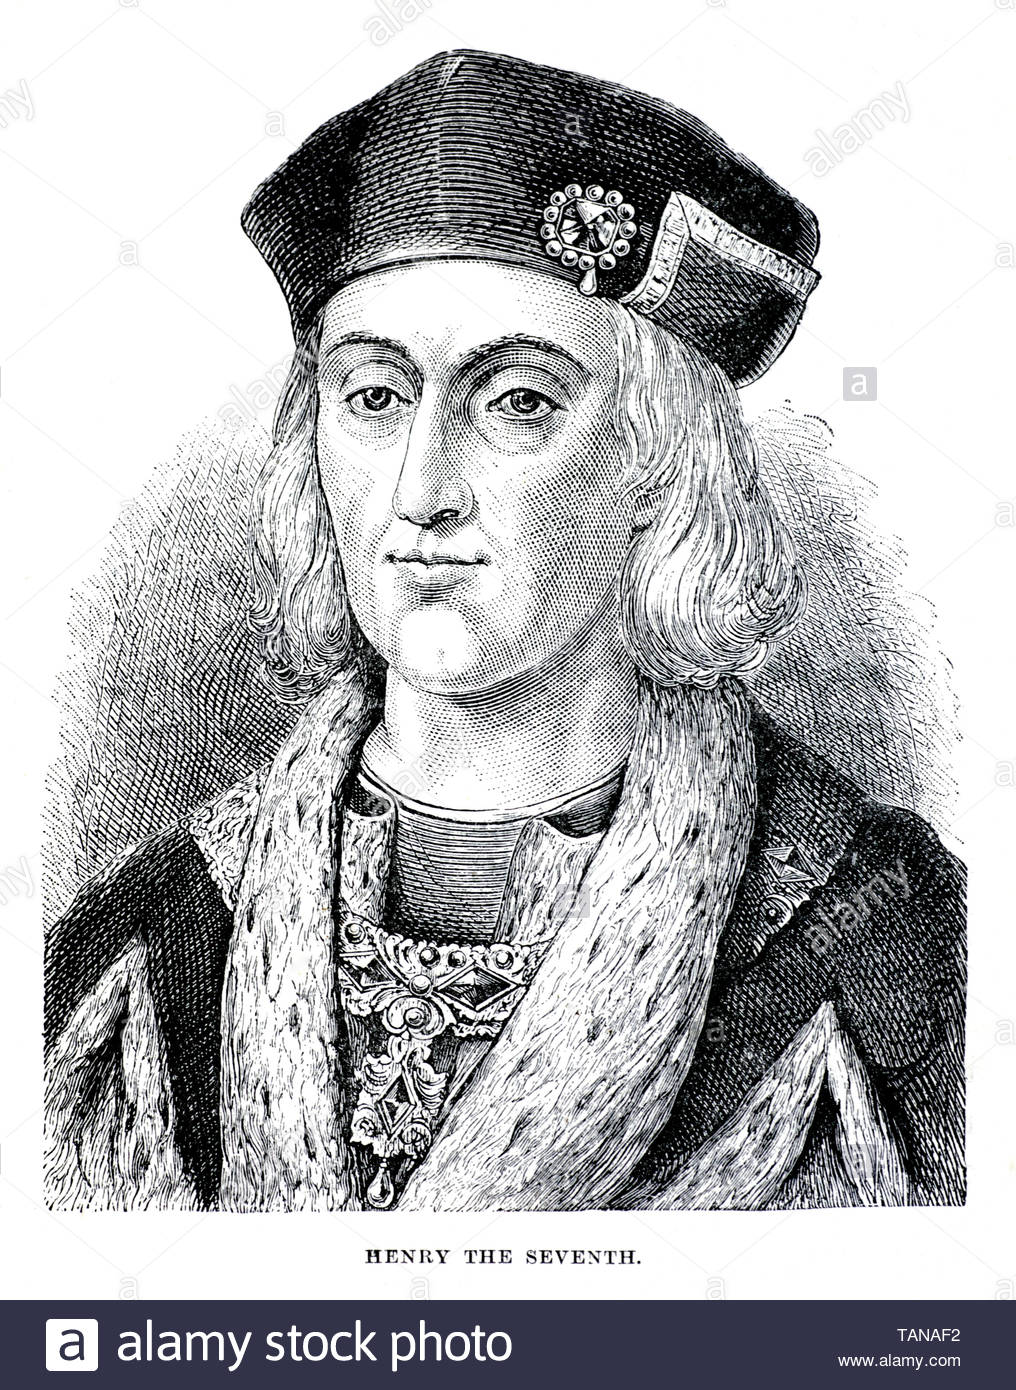 Henry VII, 1457 – 1509, was the King of England and Lord of Ireland from 1485 to his death on 21st April 1509 - Stock Image